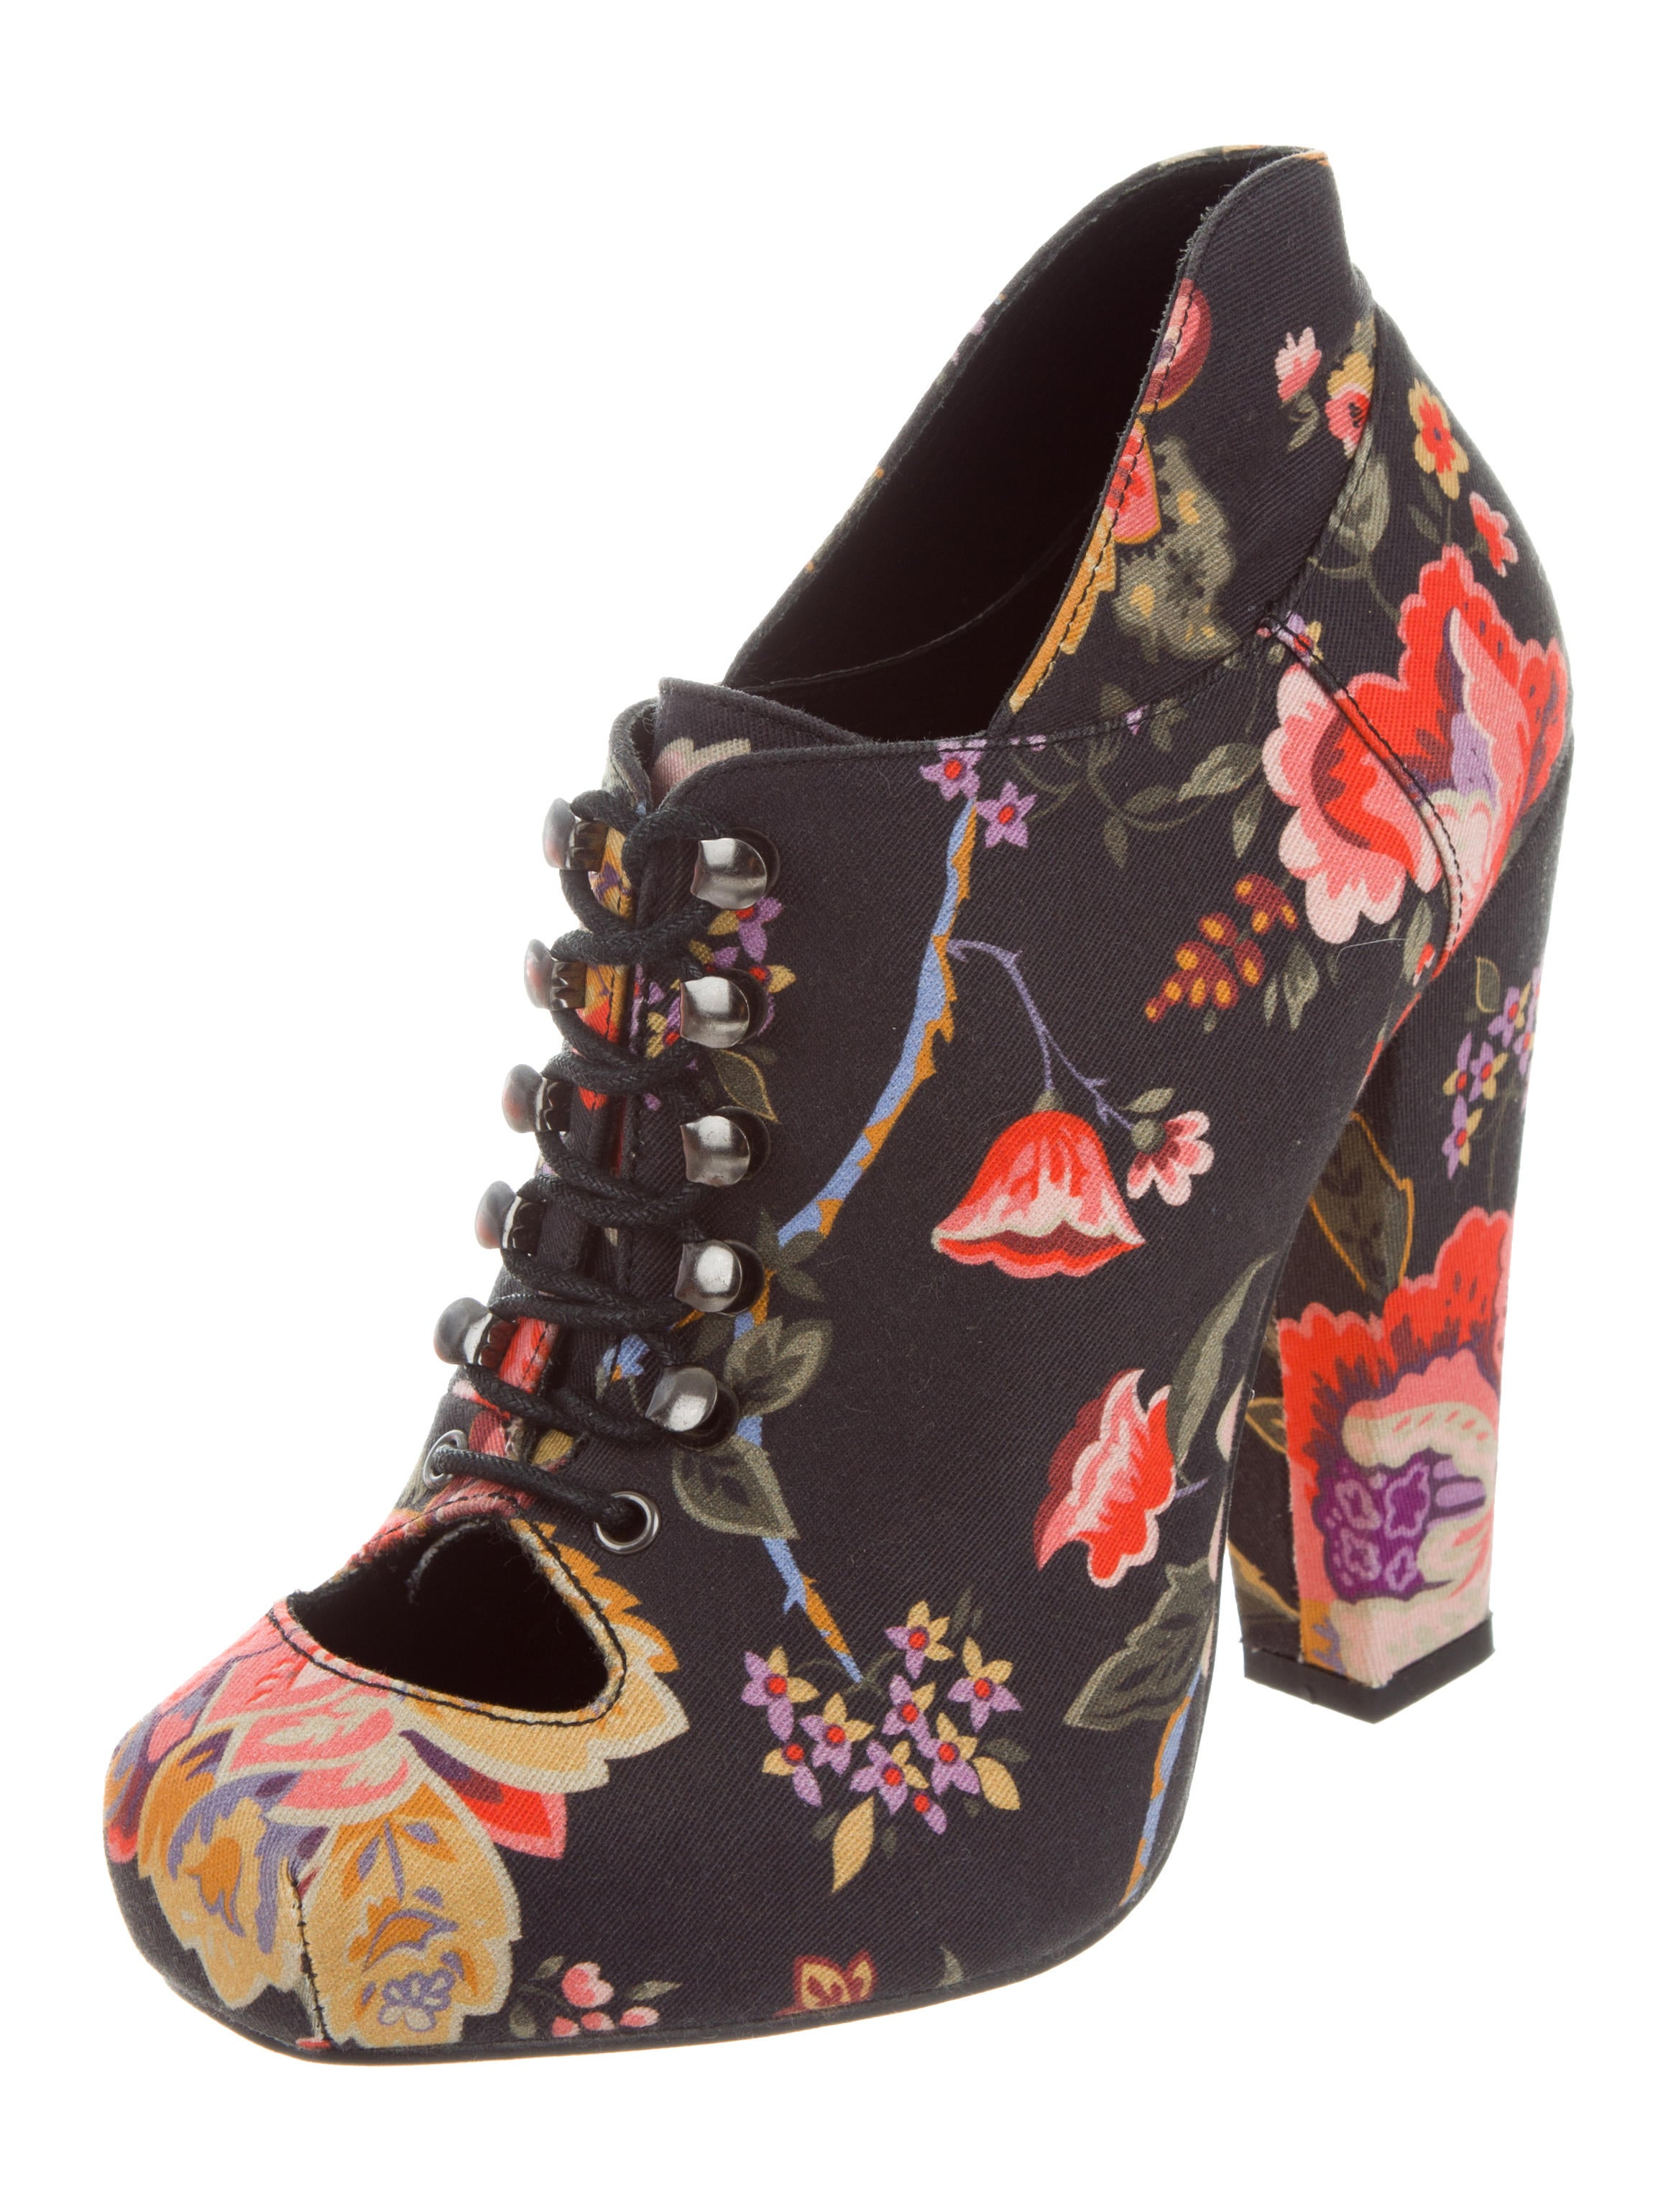 Rodarte x Opening Ceremony Floral Print Ankle Boots outlet 100% original order cheap price free shipping in China buy cheap with mastercard supply online QsfmI3